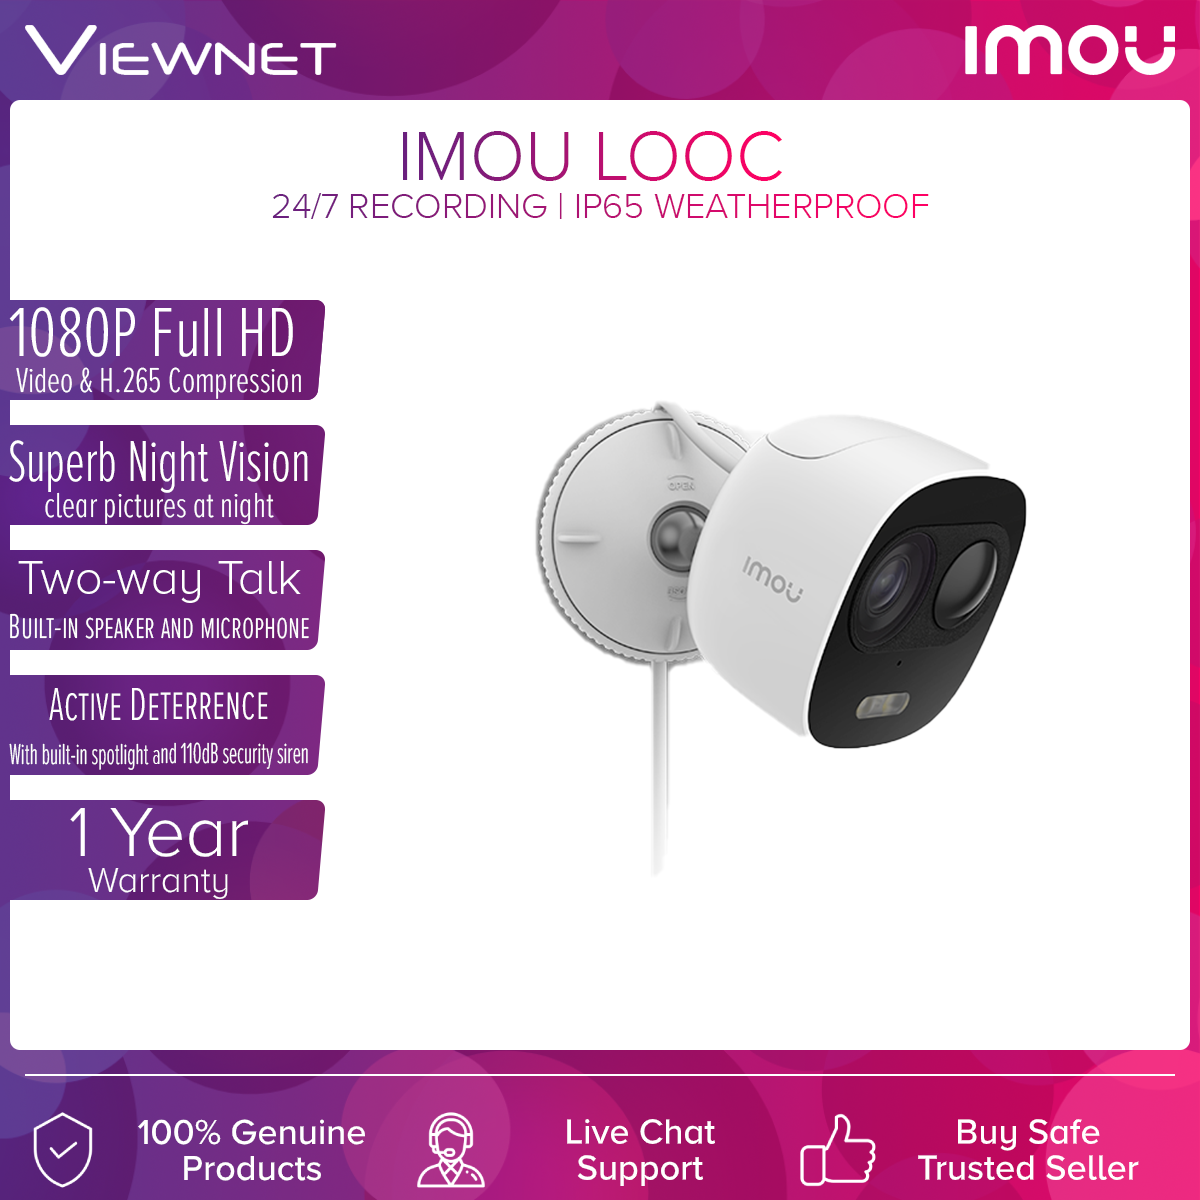 DAHUA IMOU Looc Outdoor IP65 PIR Detection 1080P Full HD Wireless WiFi IP Camera with (CCTV) With Spotlight And Siren Alarm